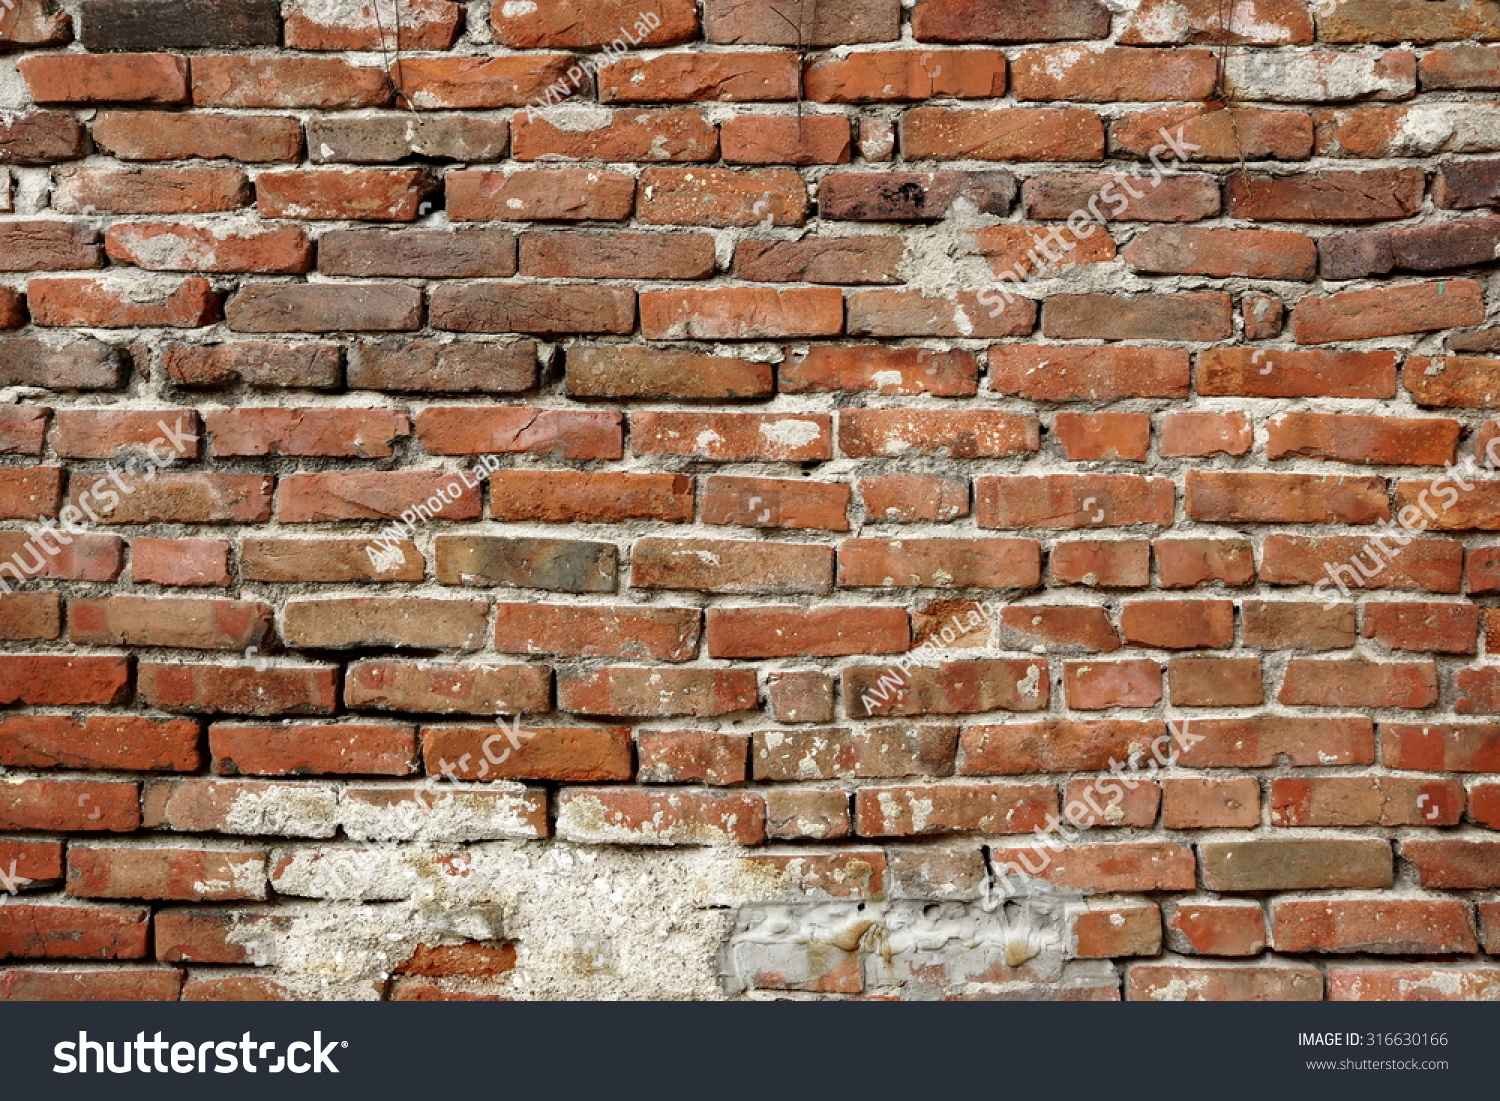 Old Uneven Crumbling Red Brick Wall Stock Photo 316630166 Shutterstock